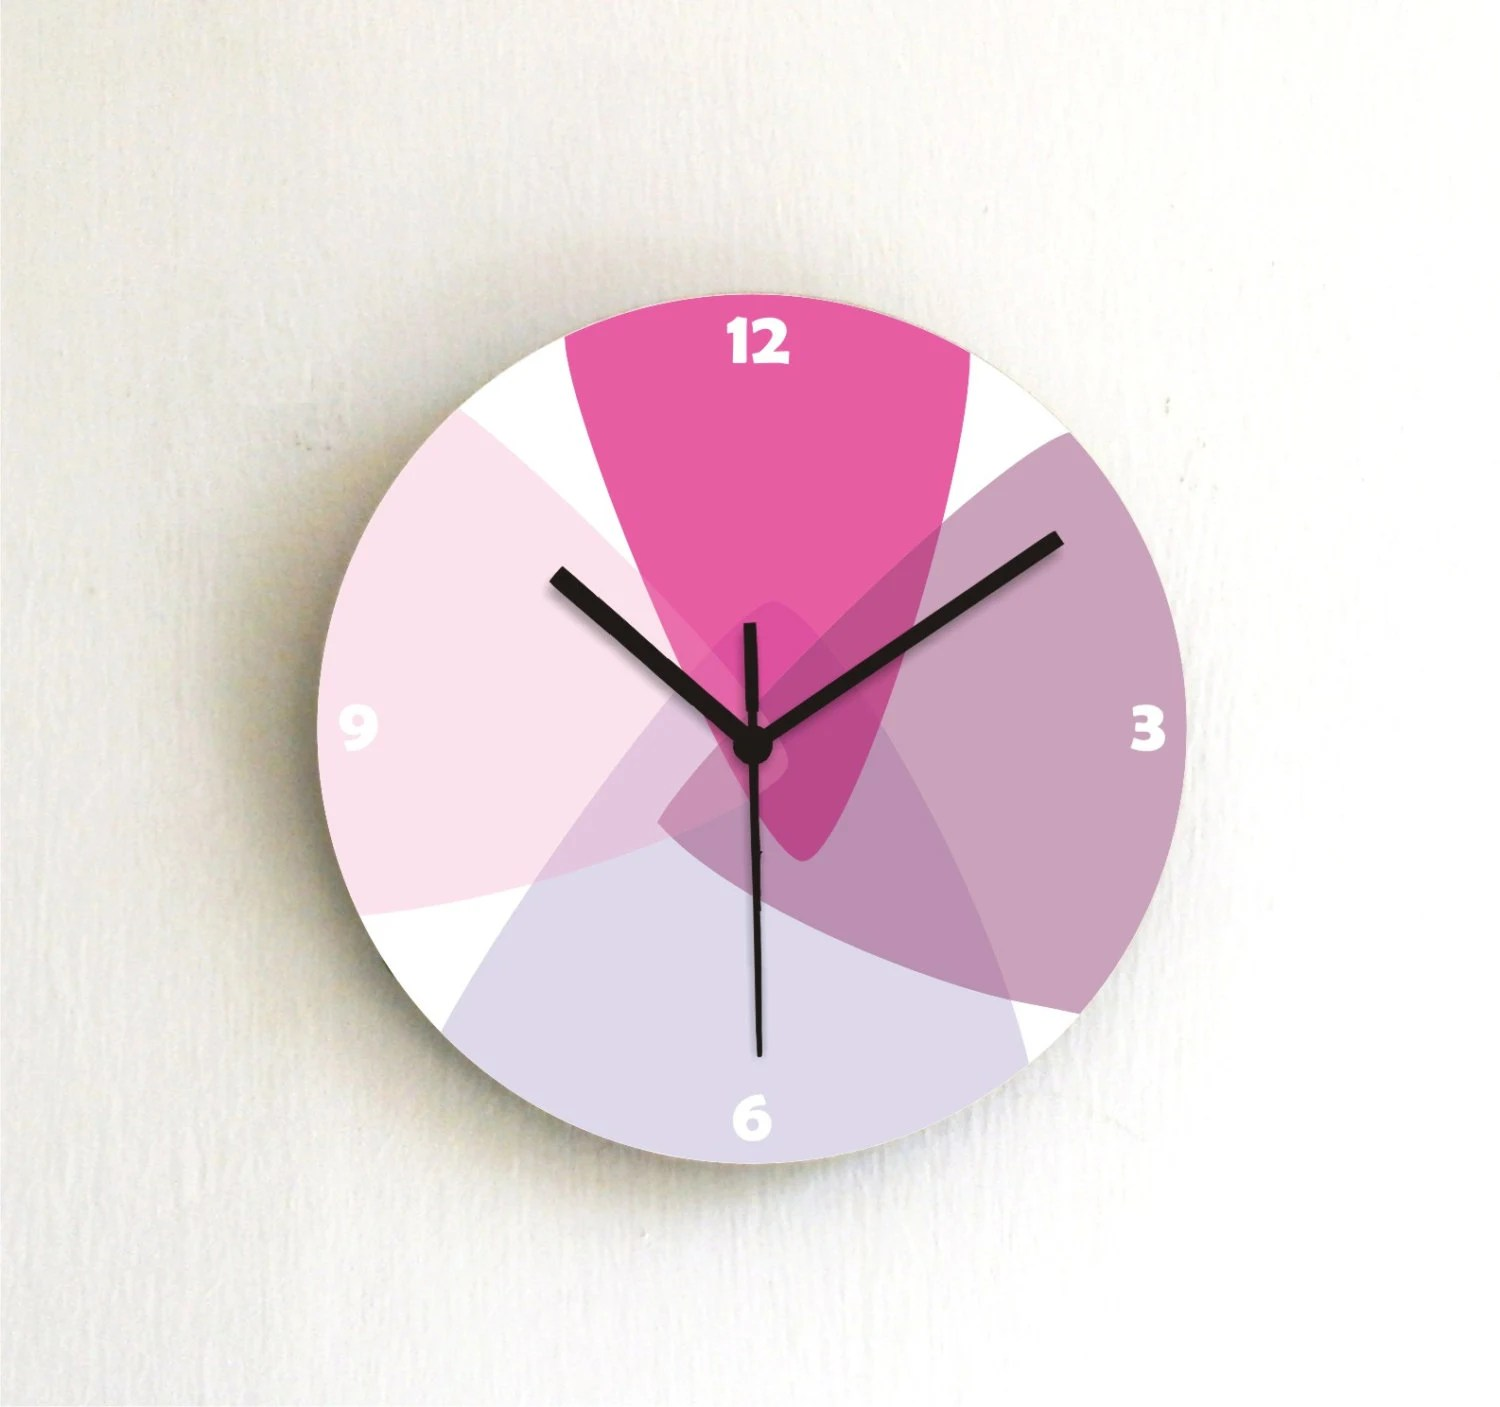 clock soft pastel pink purple lilac lavender kitchen clock living room clock childrens room clock nursery wall art wall hanging wall decor - ArtisEverything